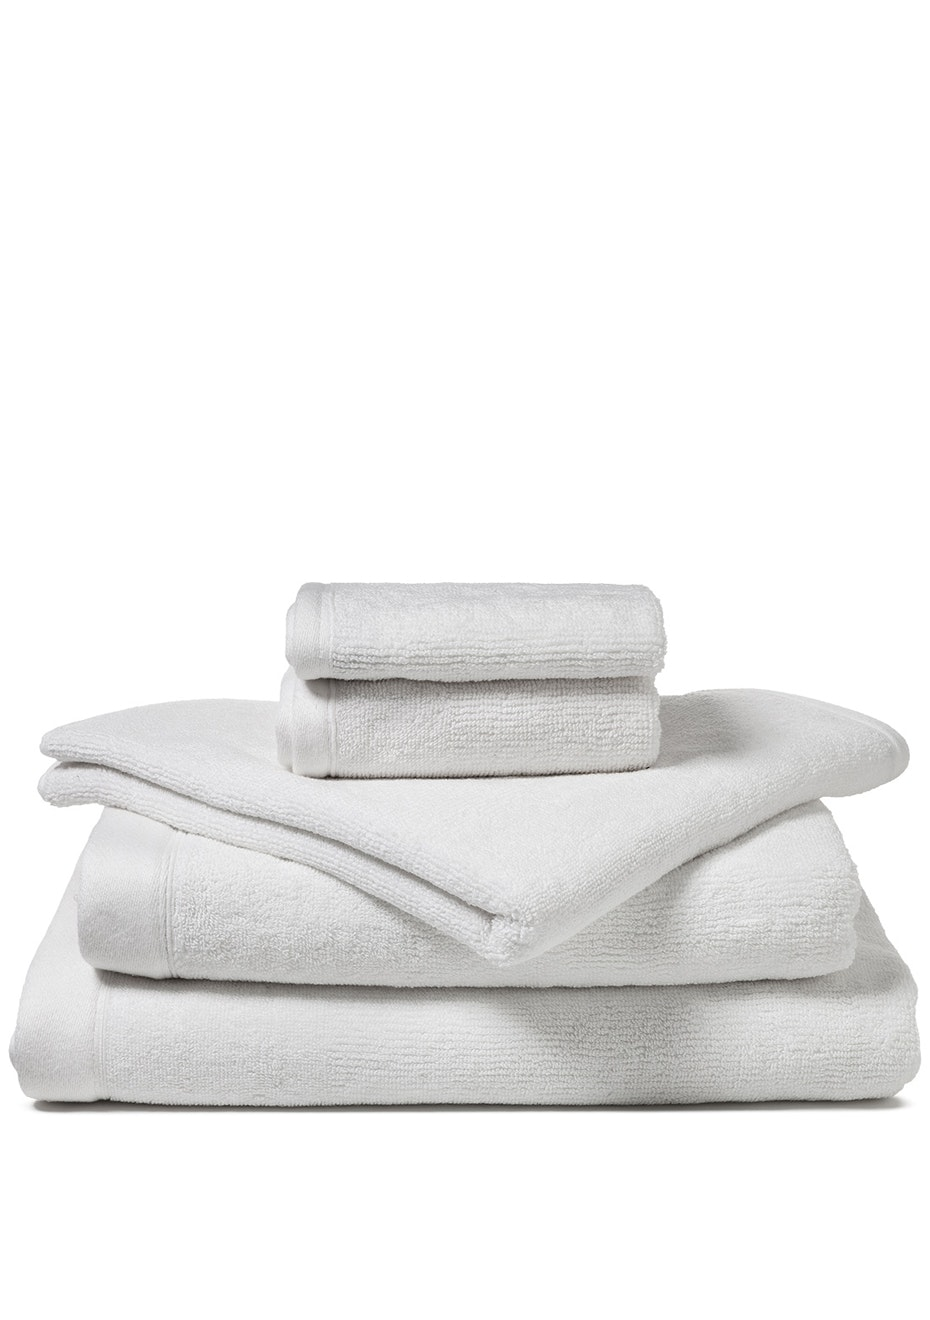 Canningvale - Corduroy Rib Bath Towel White